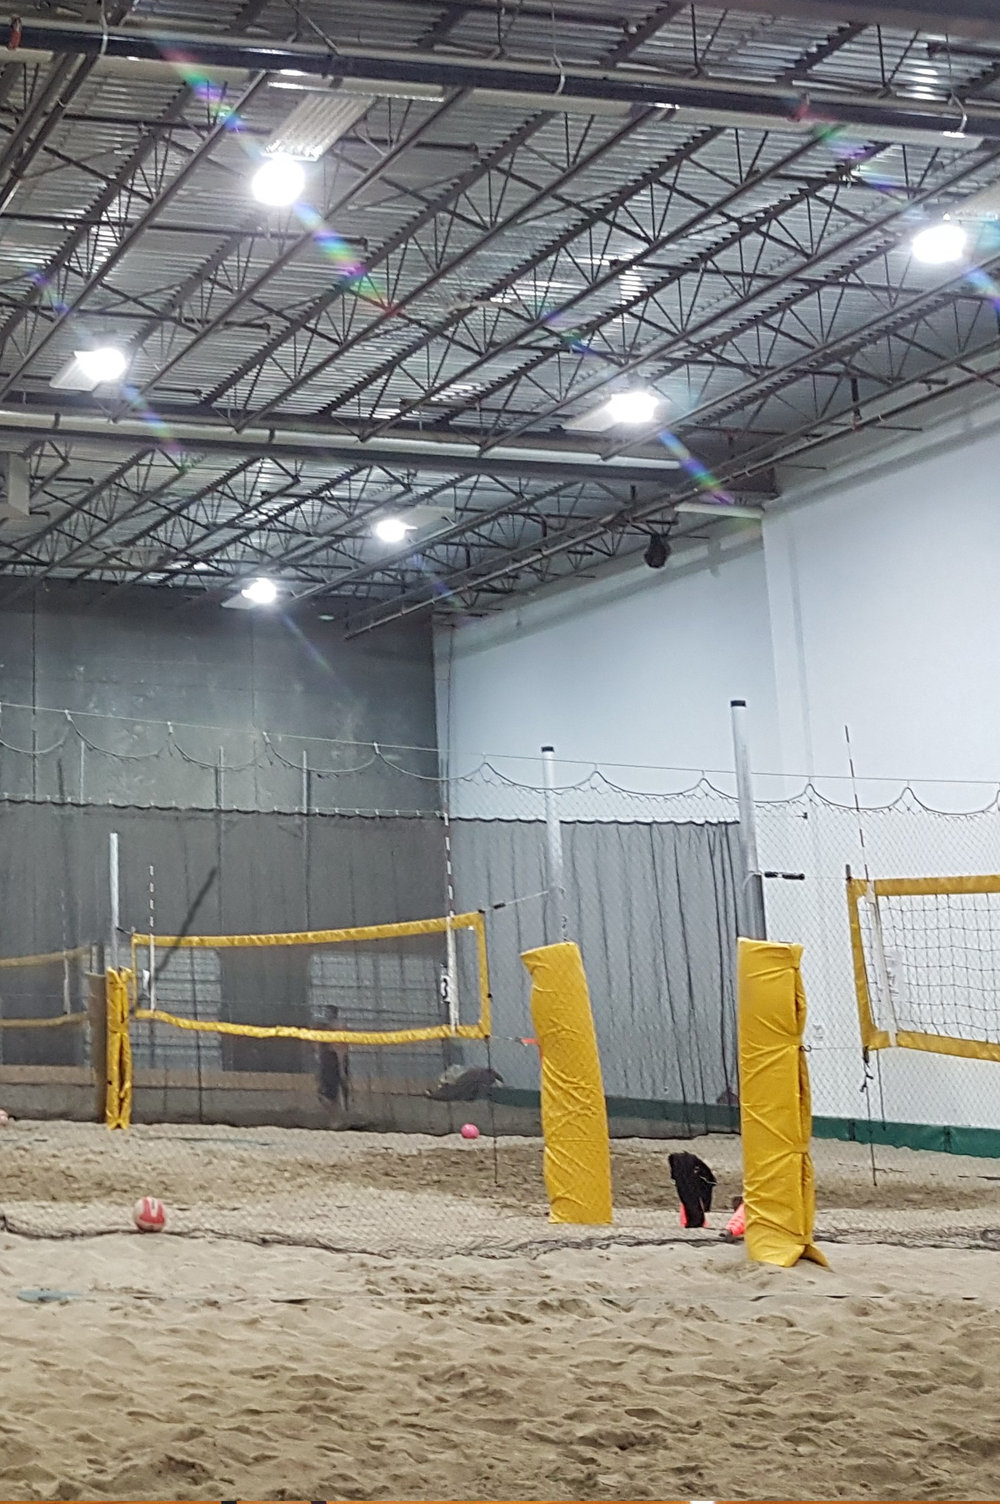 6PackVolleyBallCourt.jpg